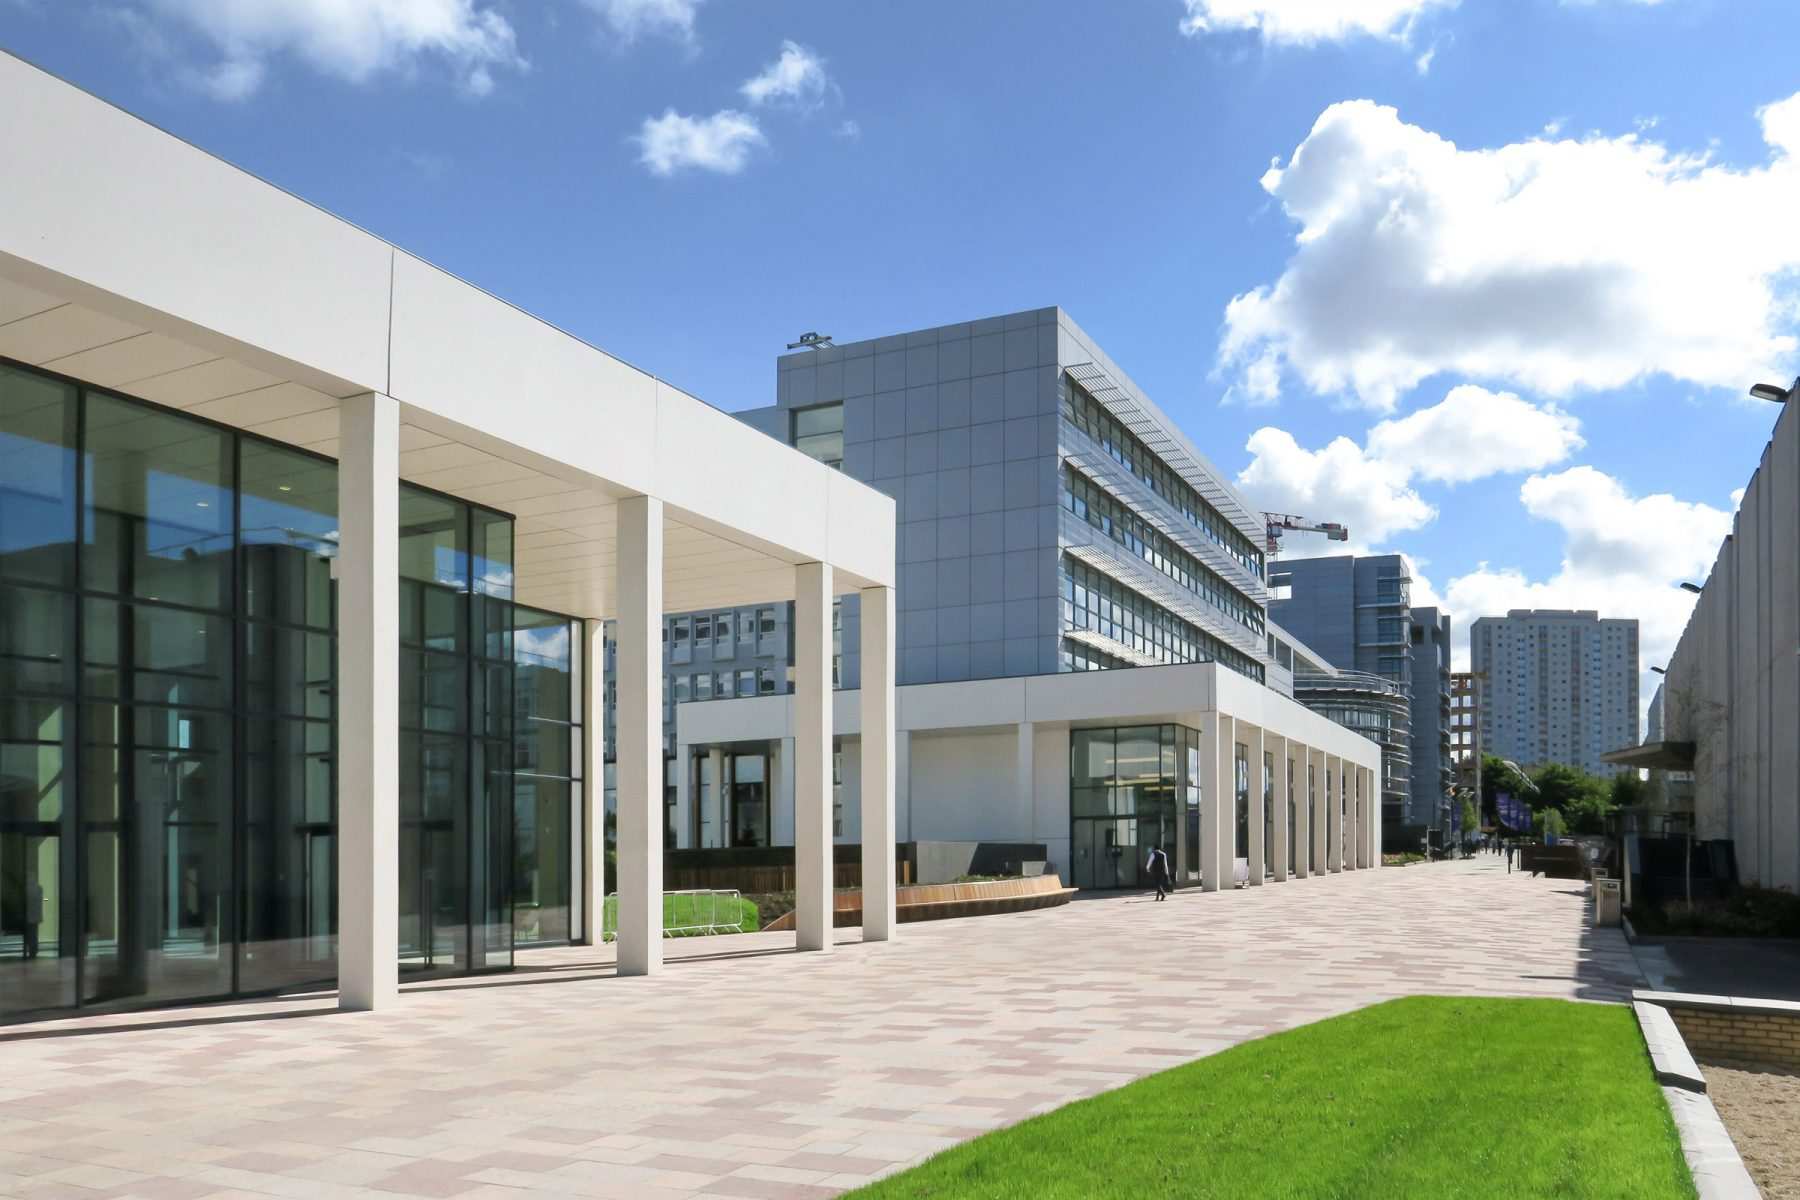 Glasgow Caledonian University, Heart of the Campus